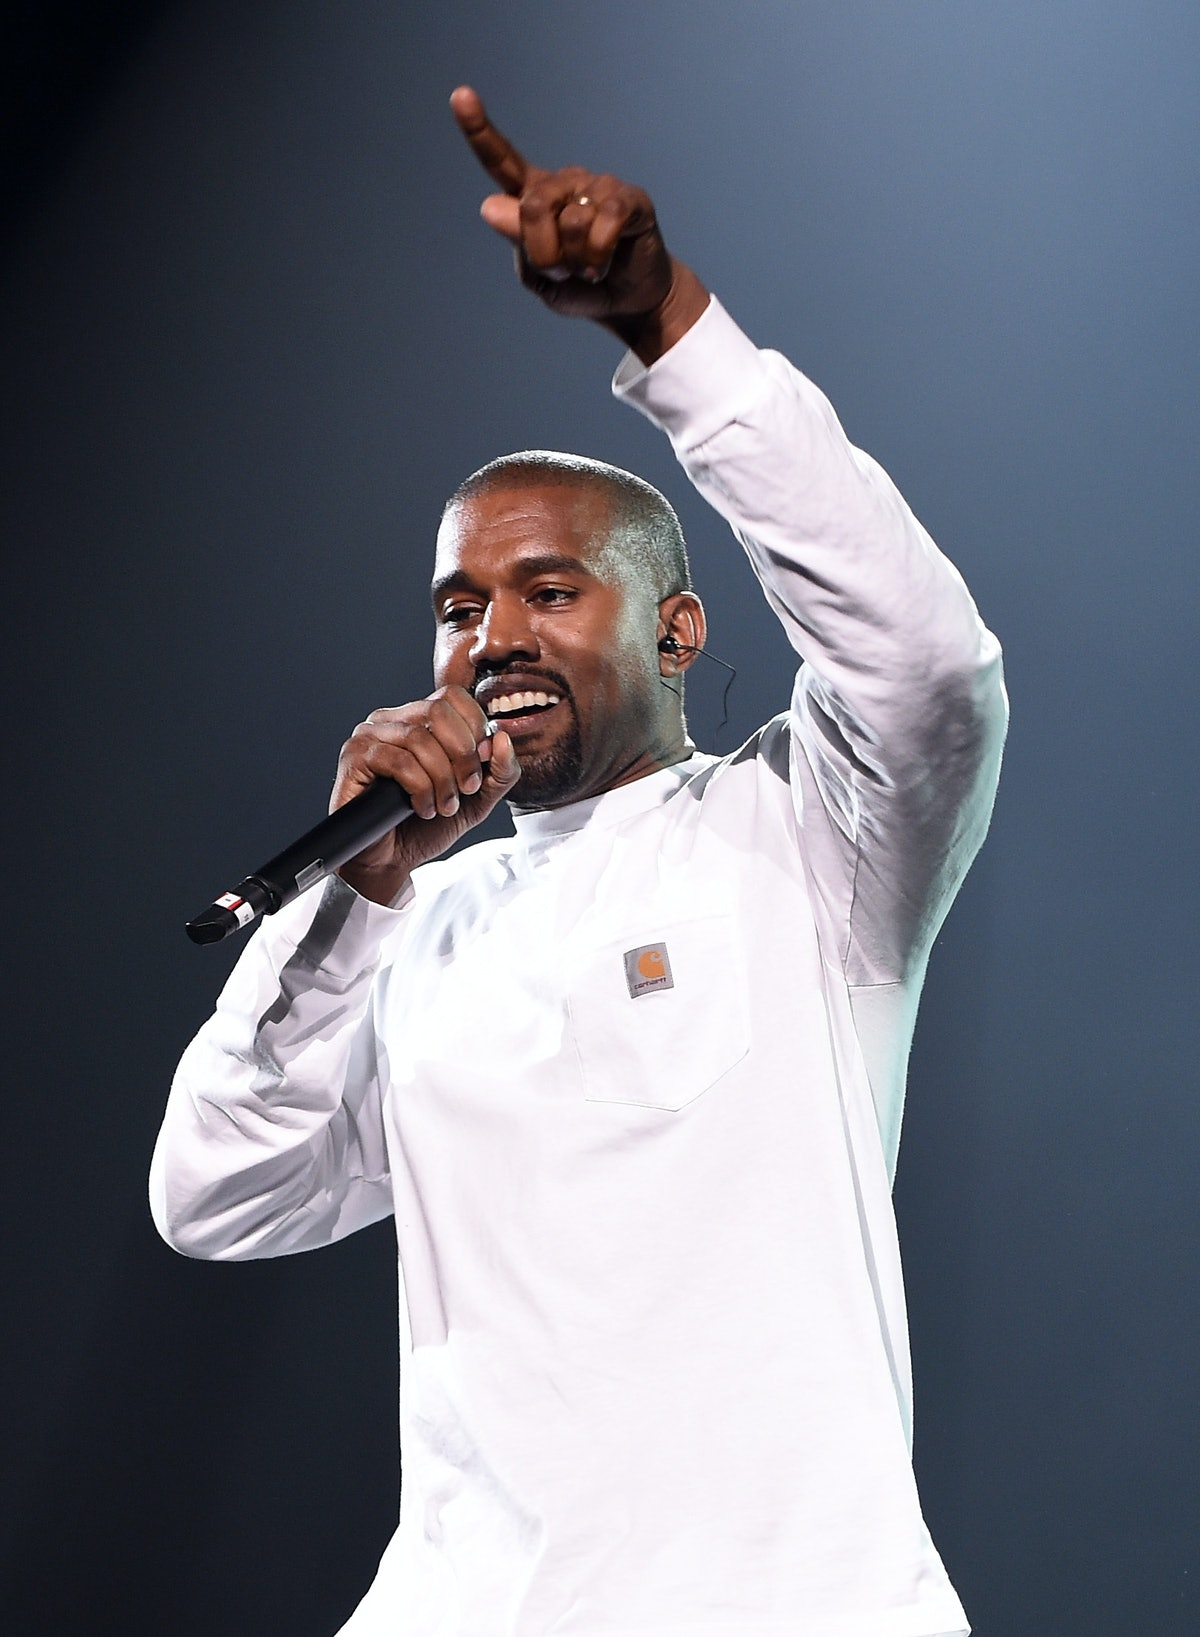 NEW YORK, NY - SEPTEMBER 04:  Kanye West performs during Puff Daddy and Bad Boy Family Reunion Tour ...